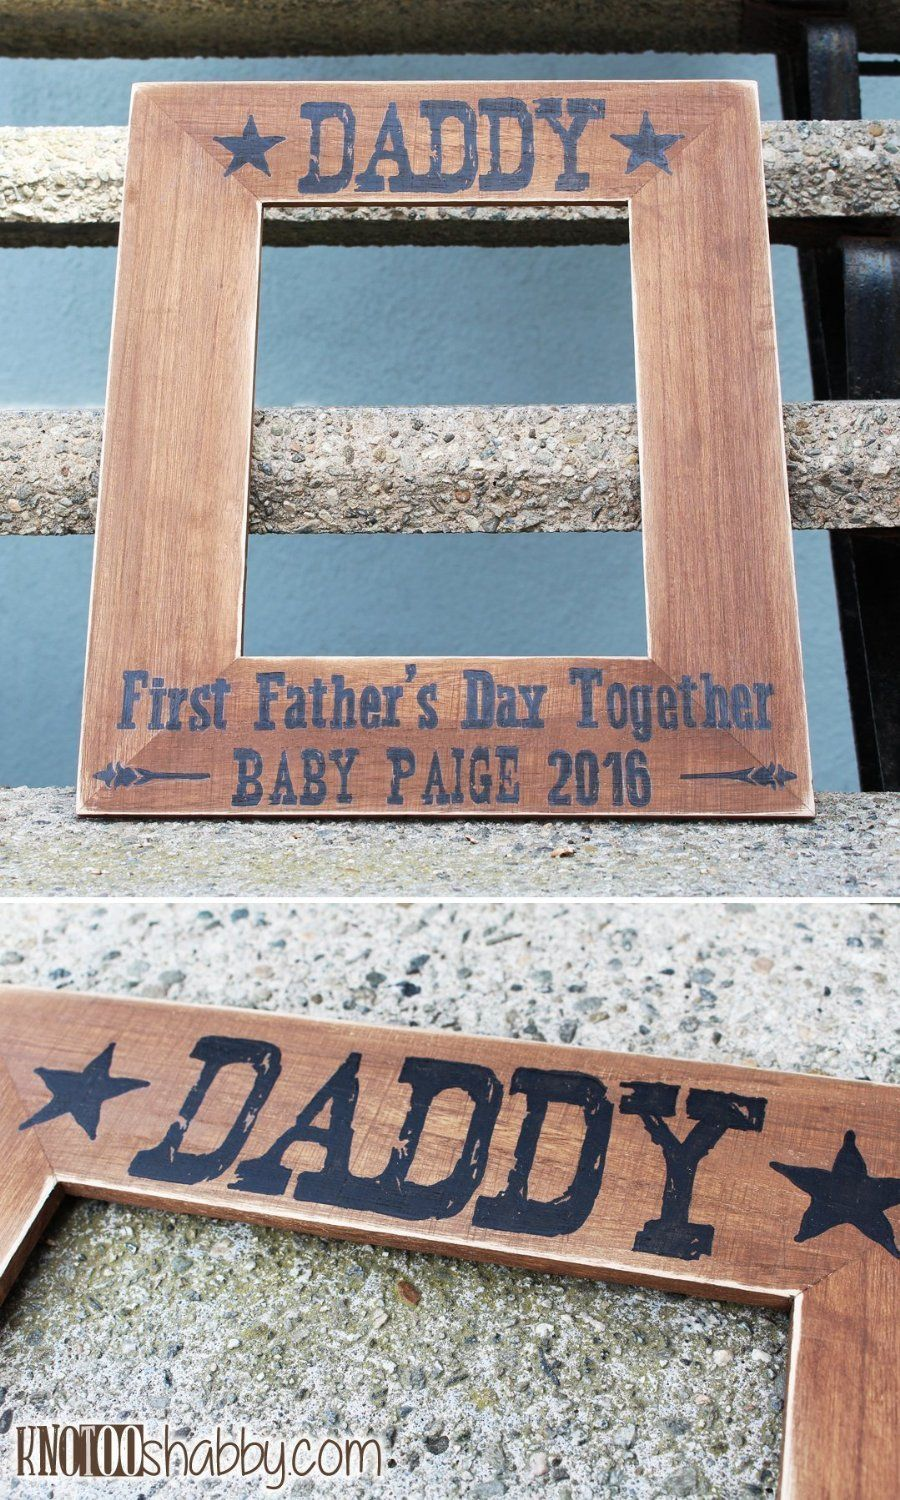 Daddys first fathers day together